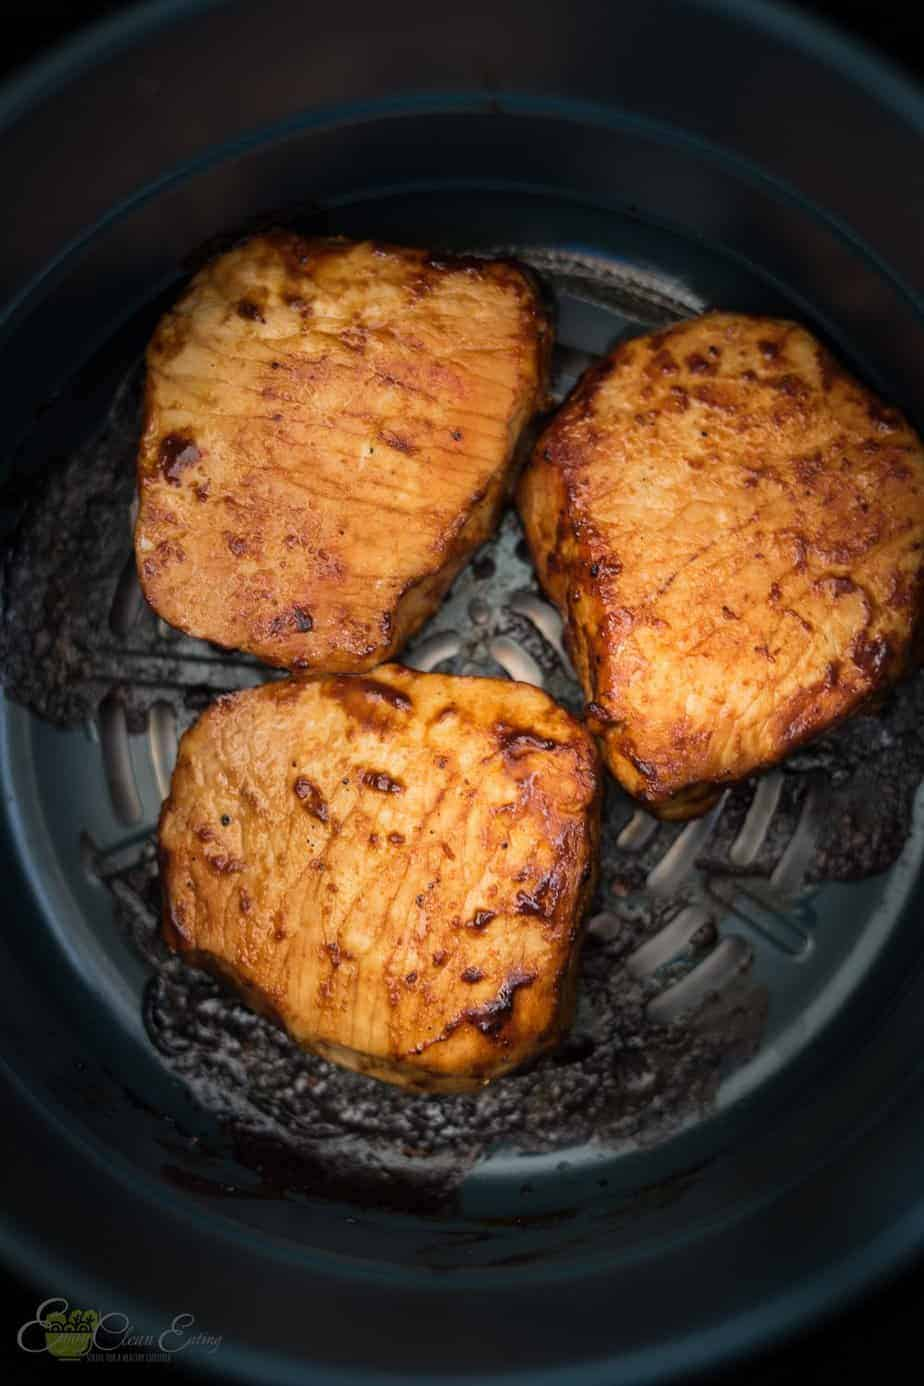 perfectly cooked air fryer pork chops inside the basket.